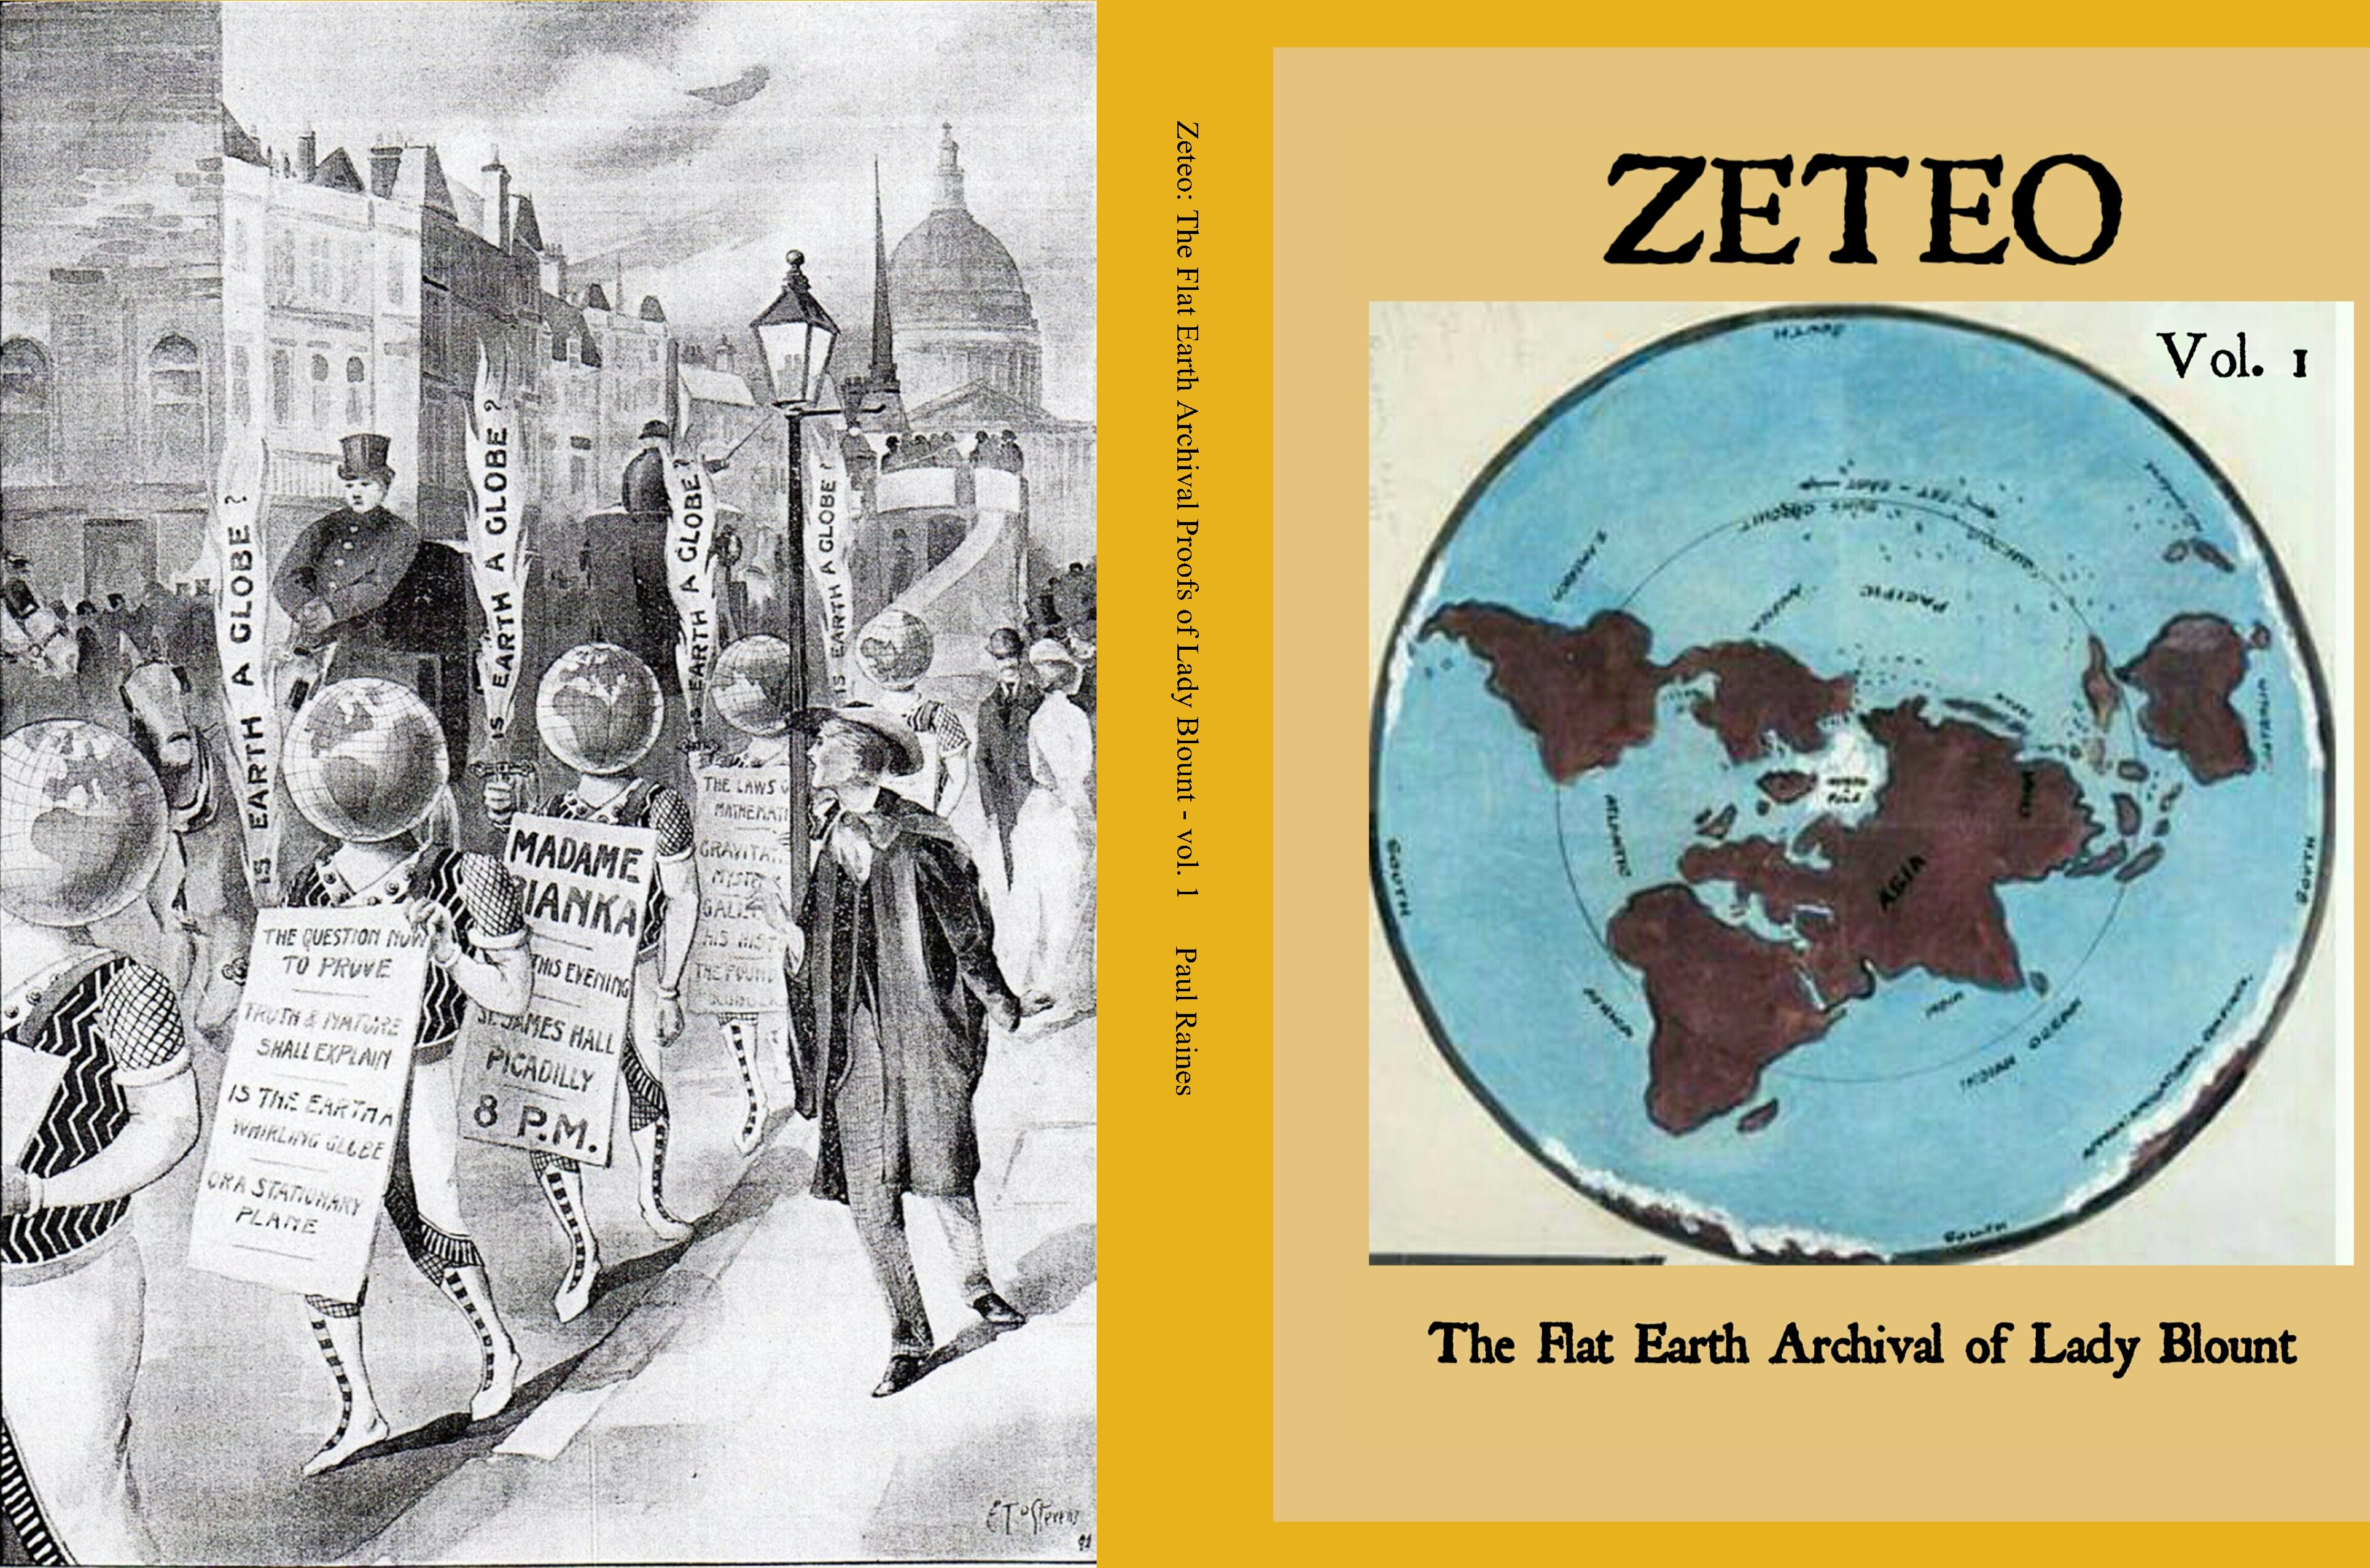 Zeteo: The Flat Earth Archival Proofs of Lady Blount - vol. 1 cover image